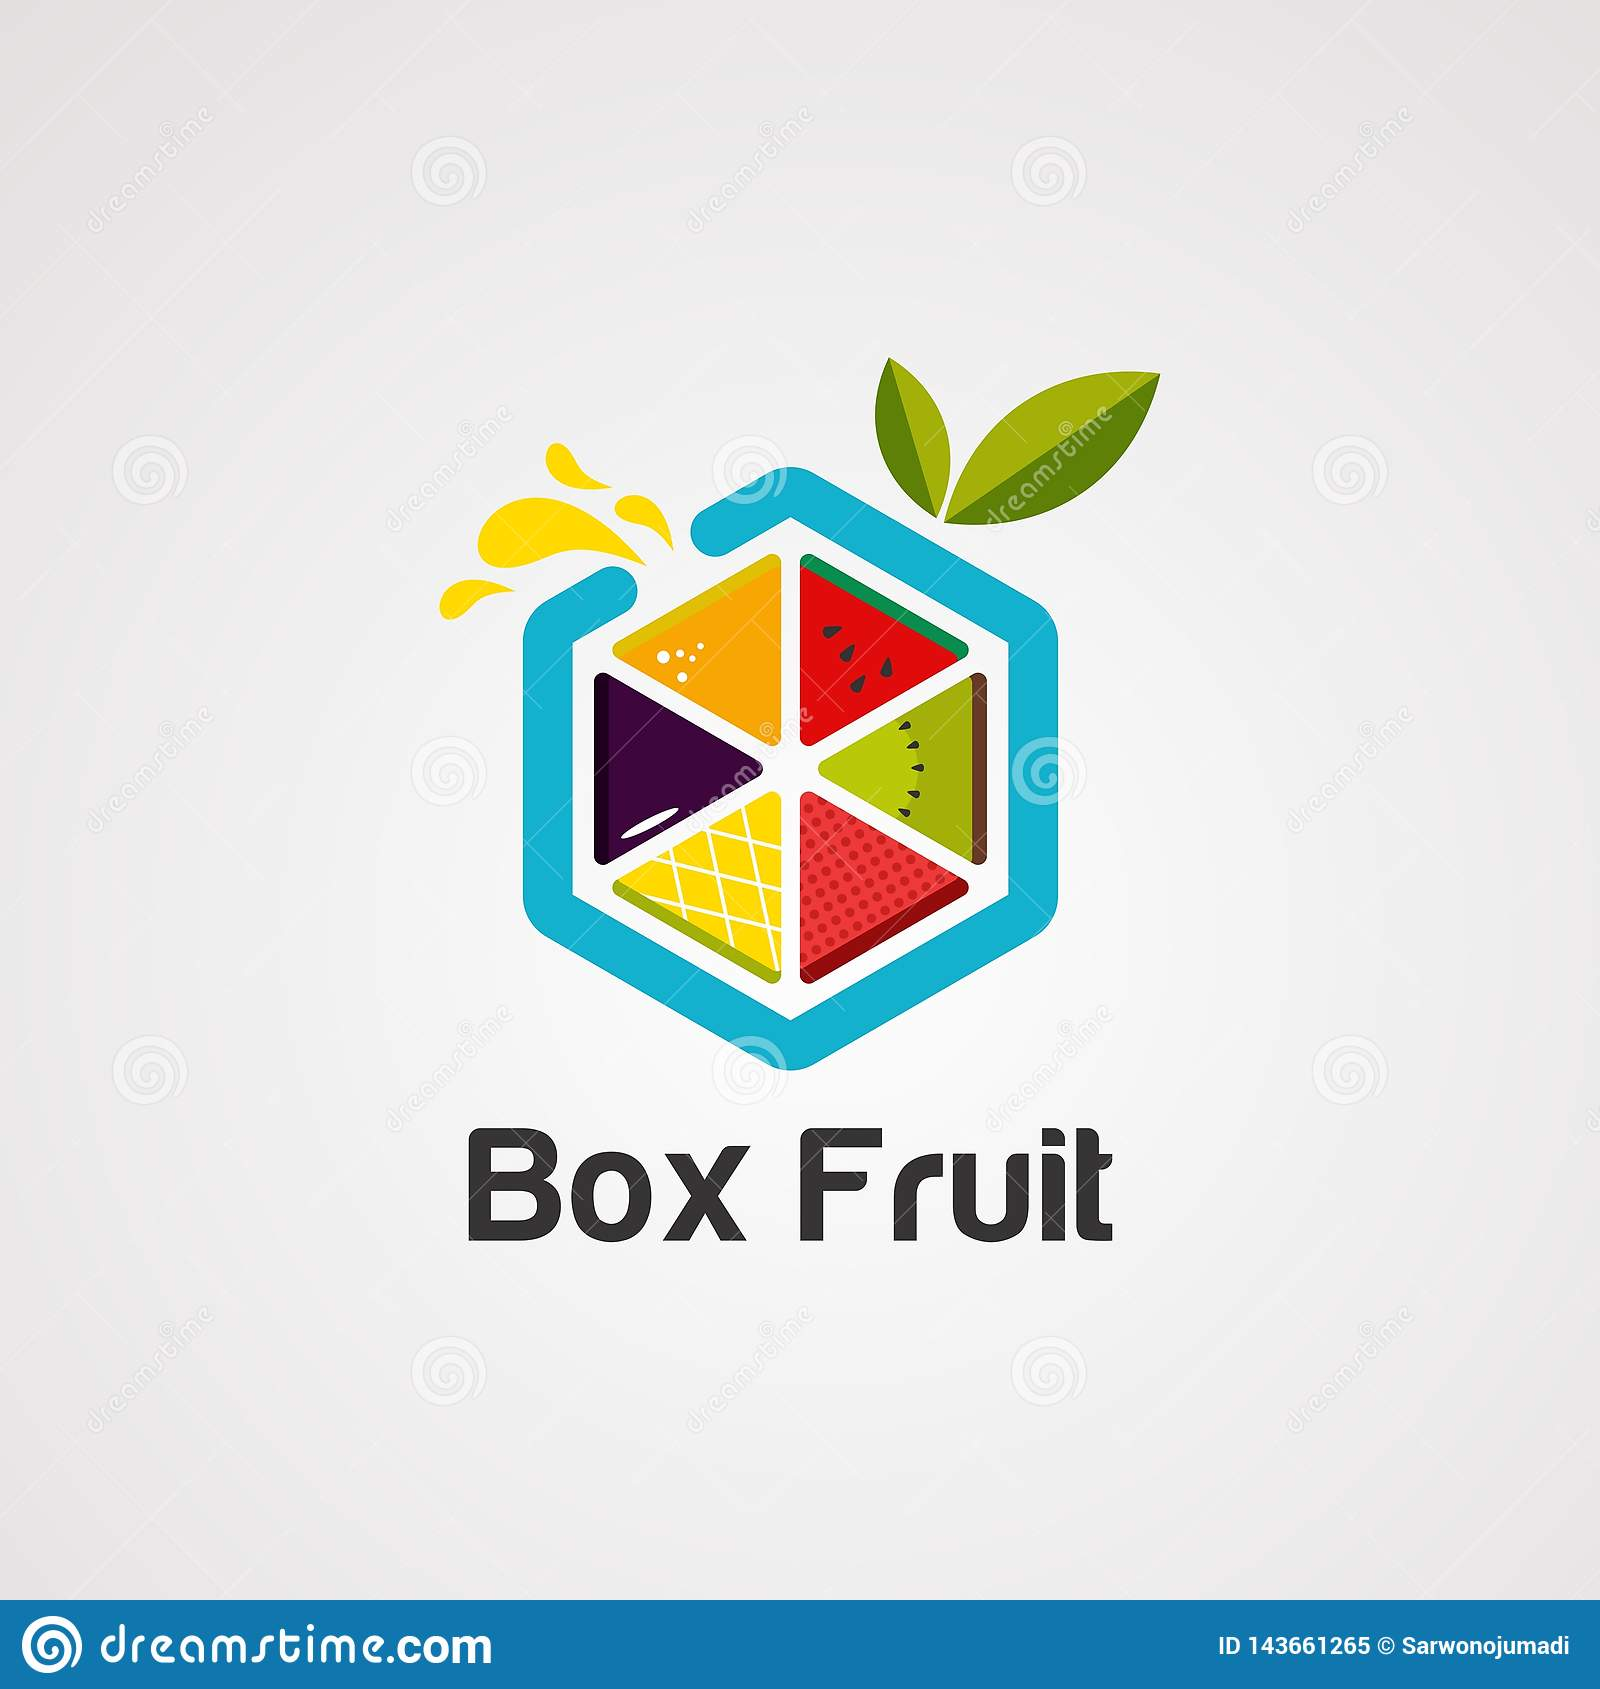 Box fruit colorful logo vector, icon, element, and template for company